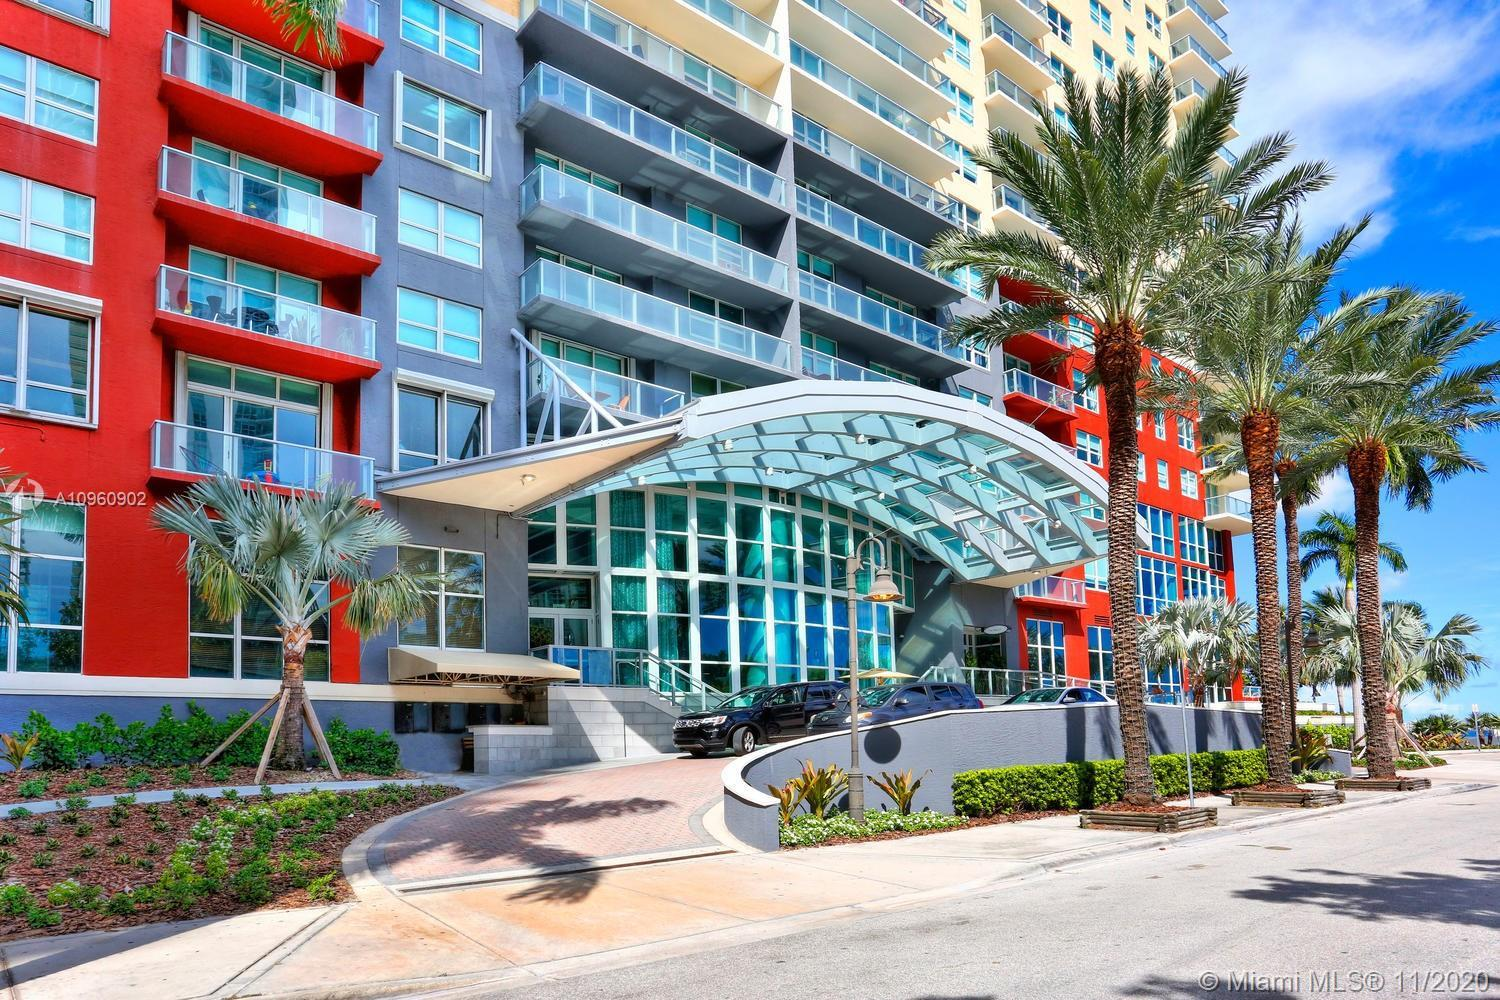 "Located in the heart of Brickell Avenue- ''The Wall Street of the South"", The Mark on Brickell Condo"